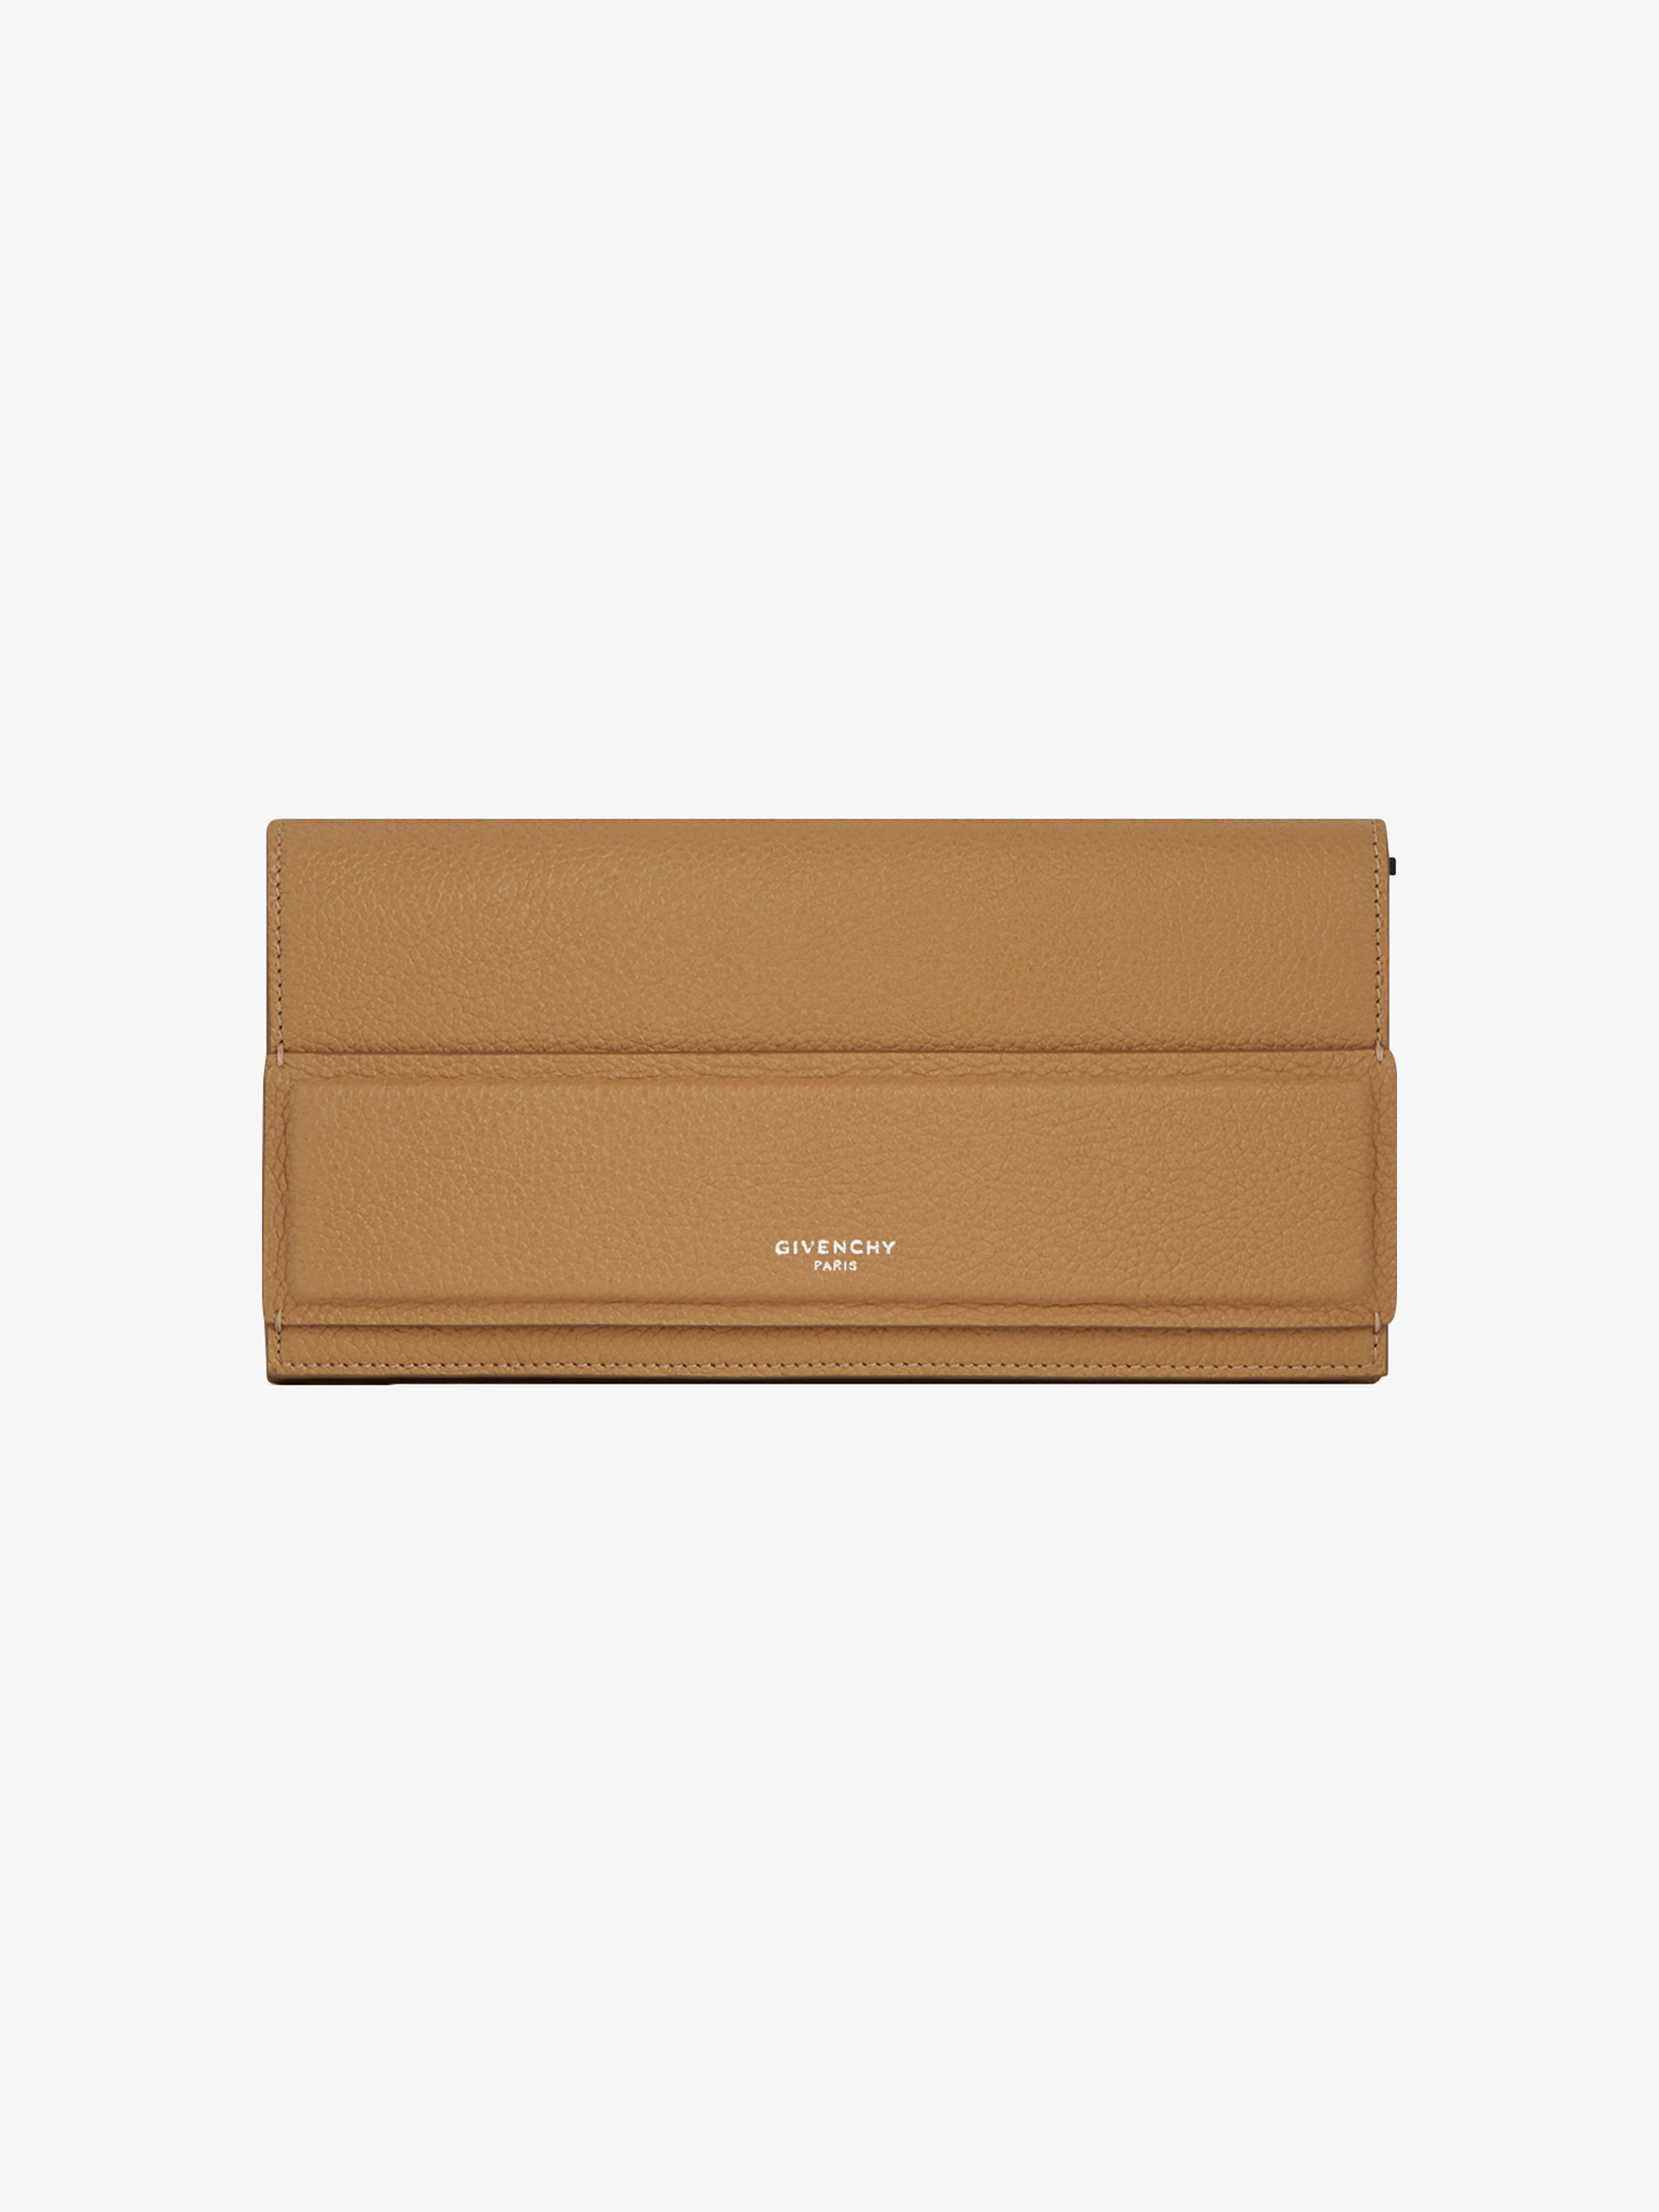 Horizon long flap wallet in grained leather